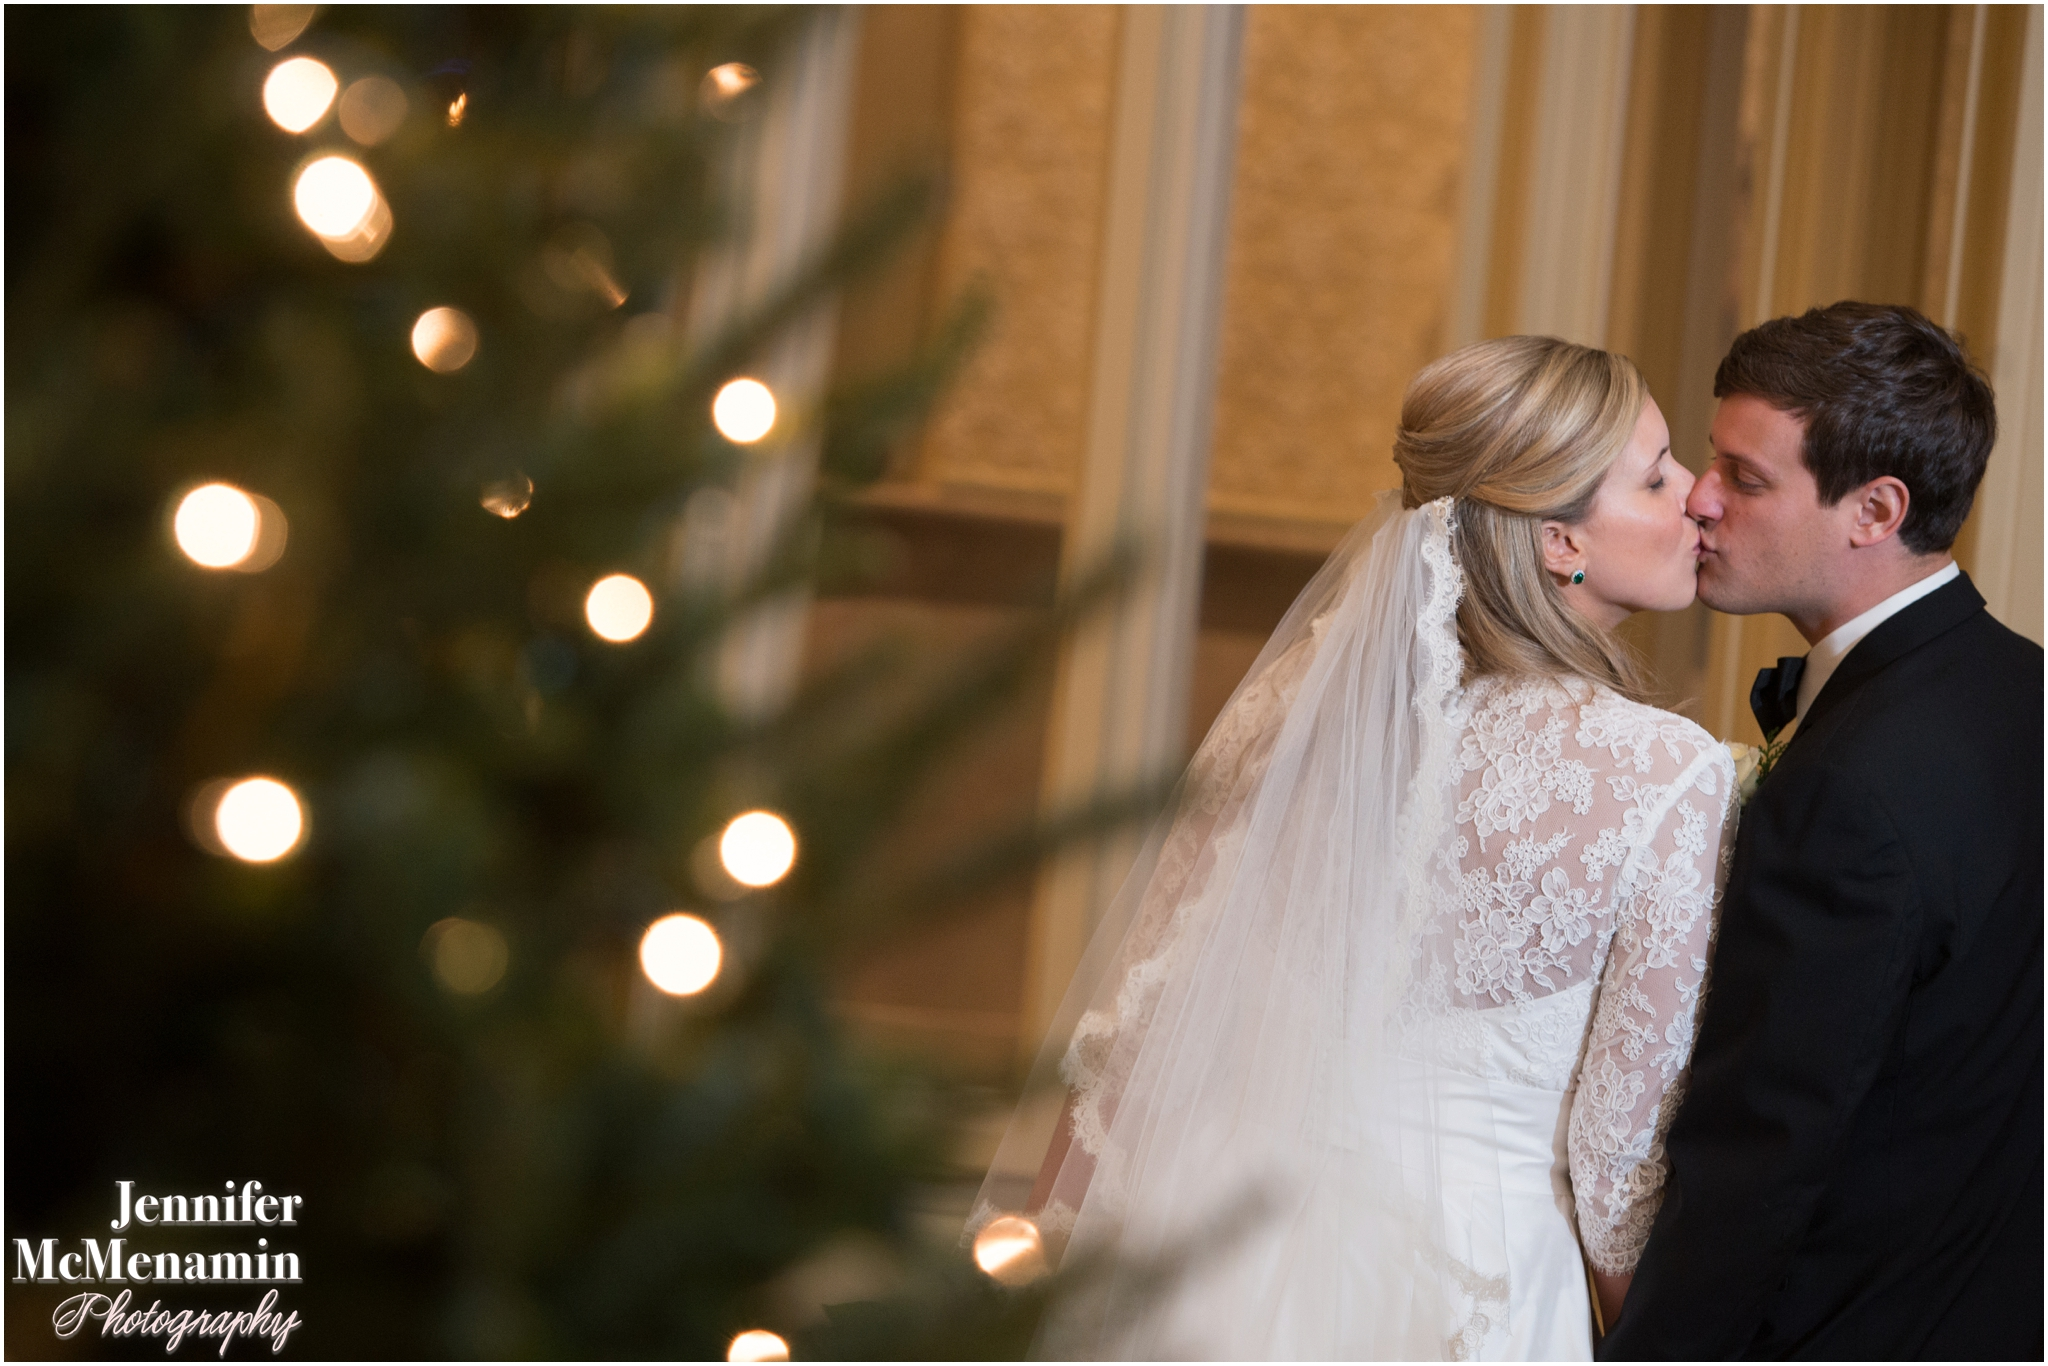 0065_RyanClemmens_01903-0510_JenniferMcMenaminPhotography_Immaculate-Conception-Church_The-Cloisters_Baltimore-wedding-photography_Baltimore-wedding-photographer